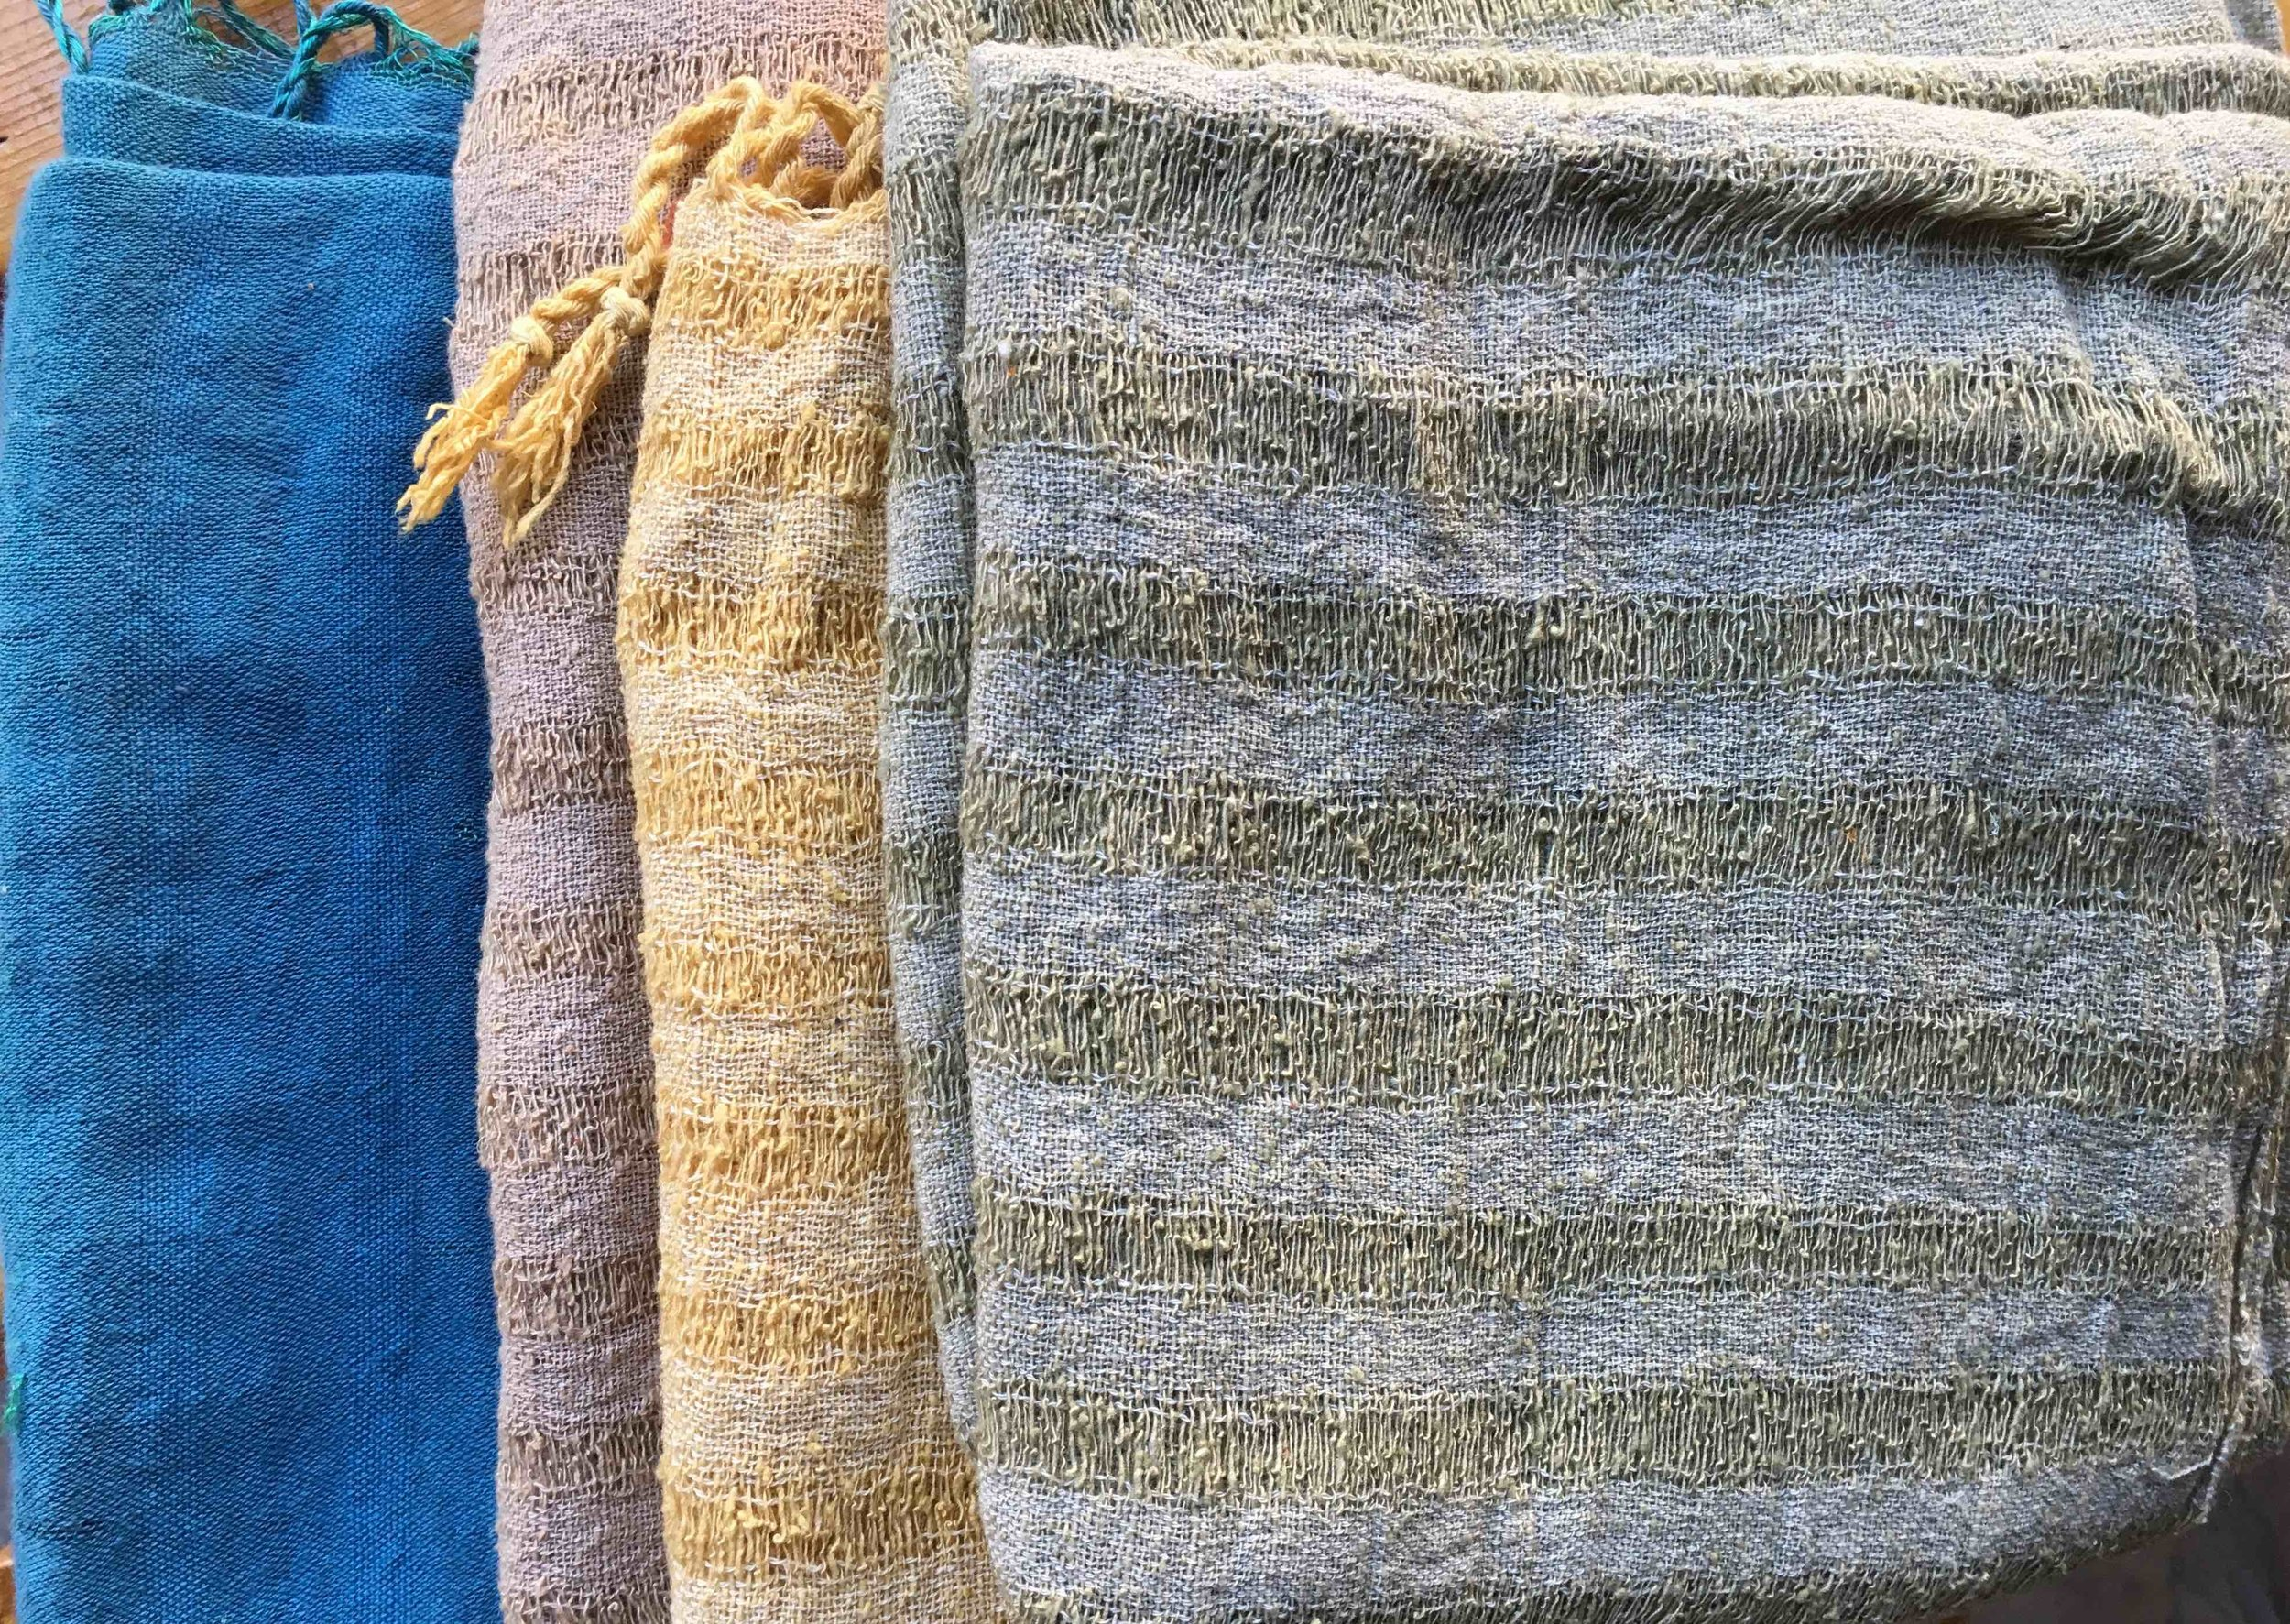 Samples of raw silk scarves